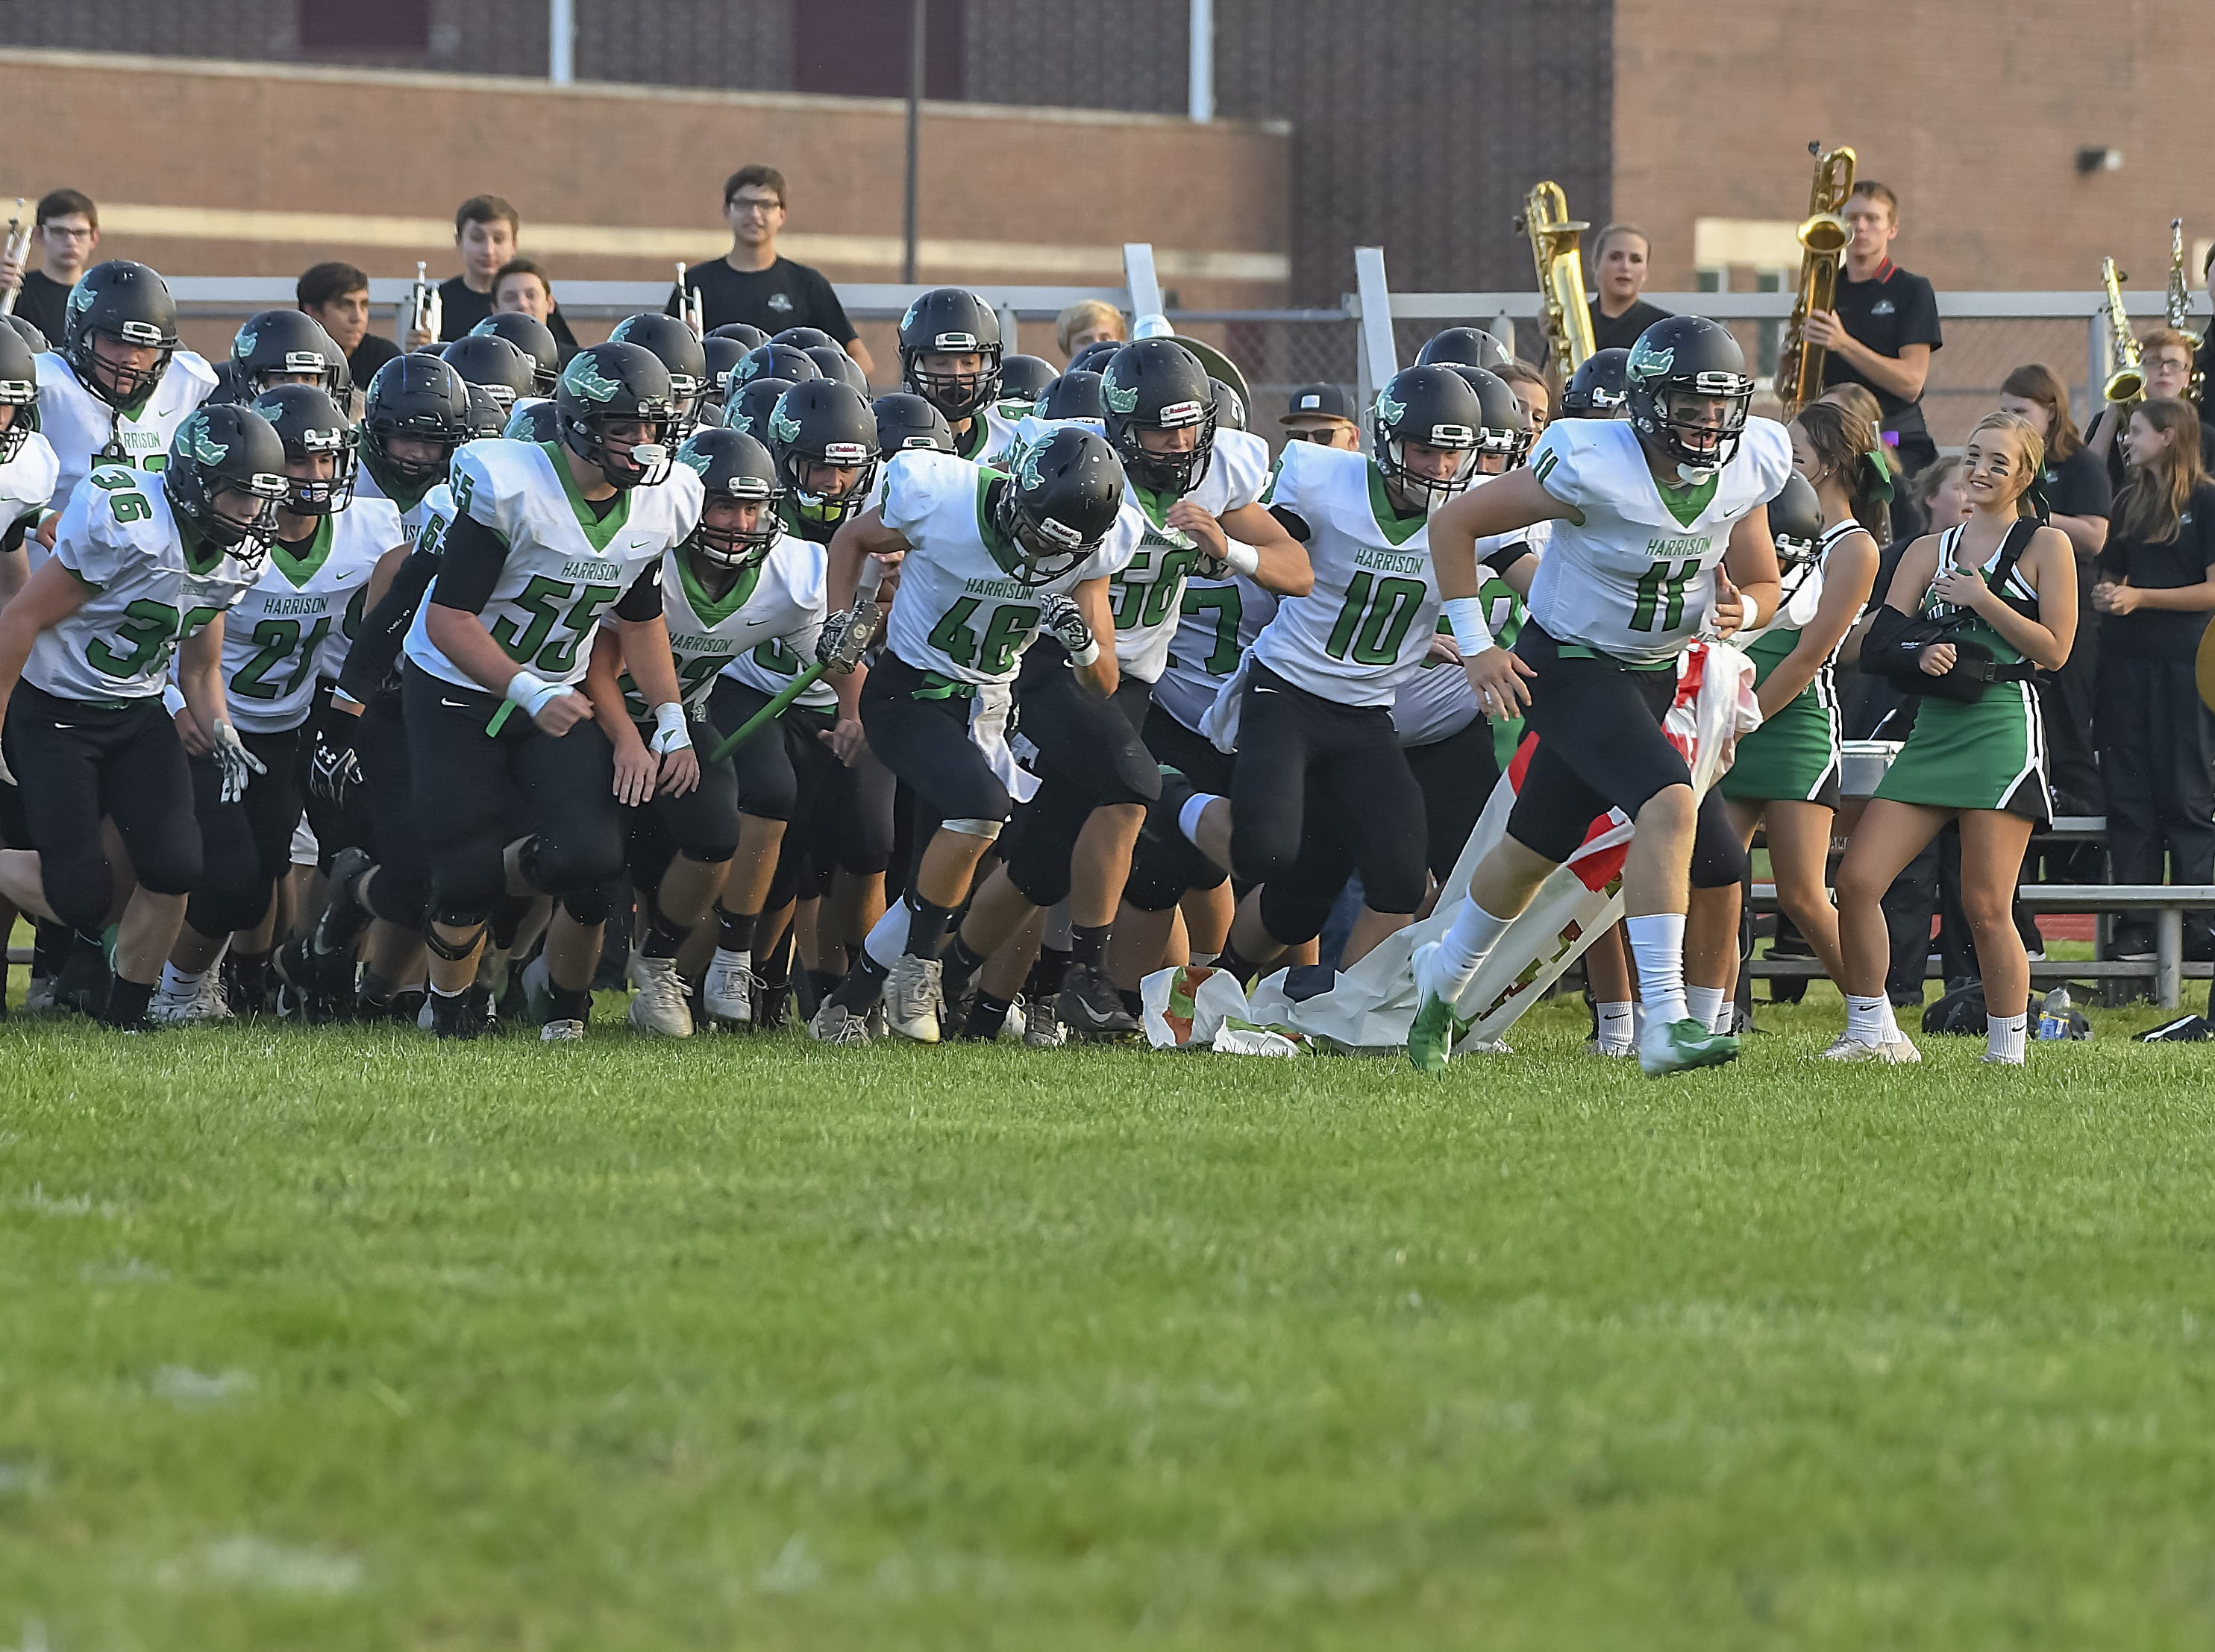 The Wildcats run on the field for their game against the Rams, Ross High School, Friday, September 14, 2018